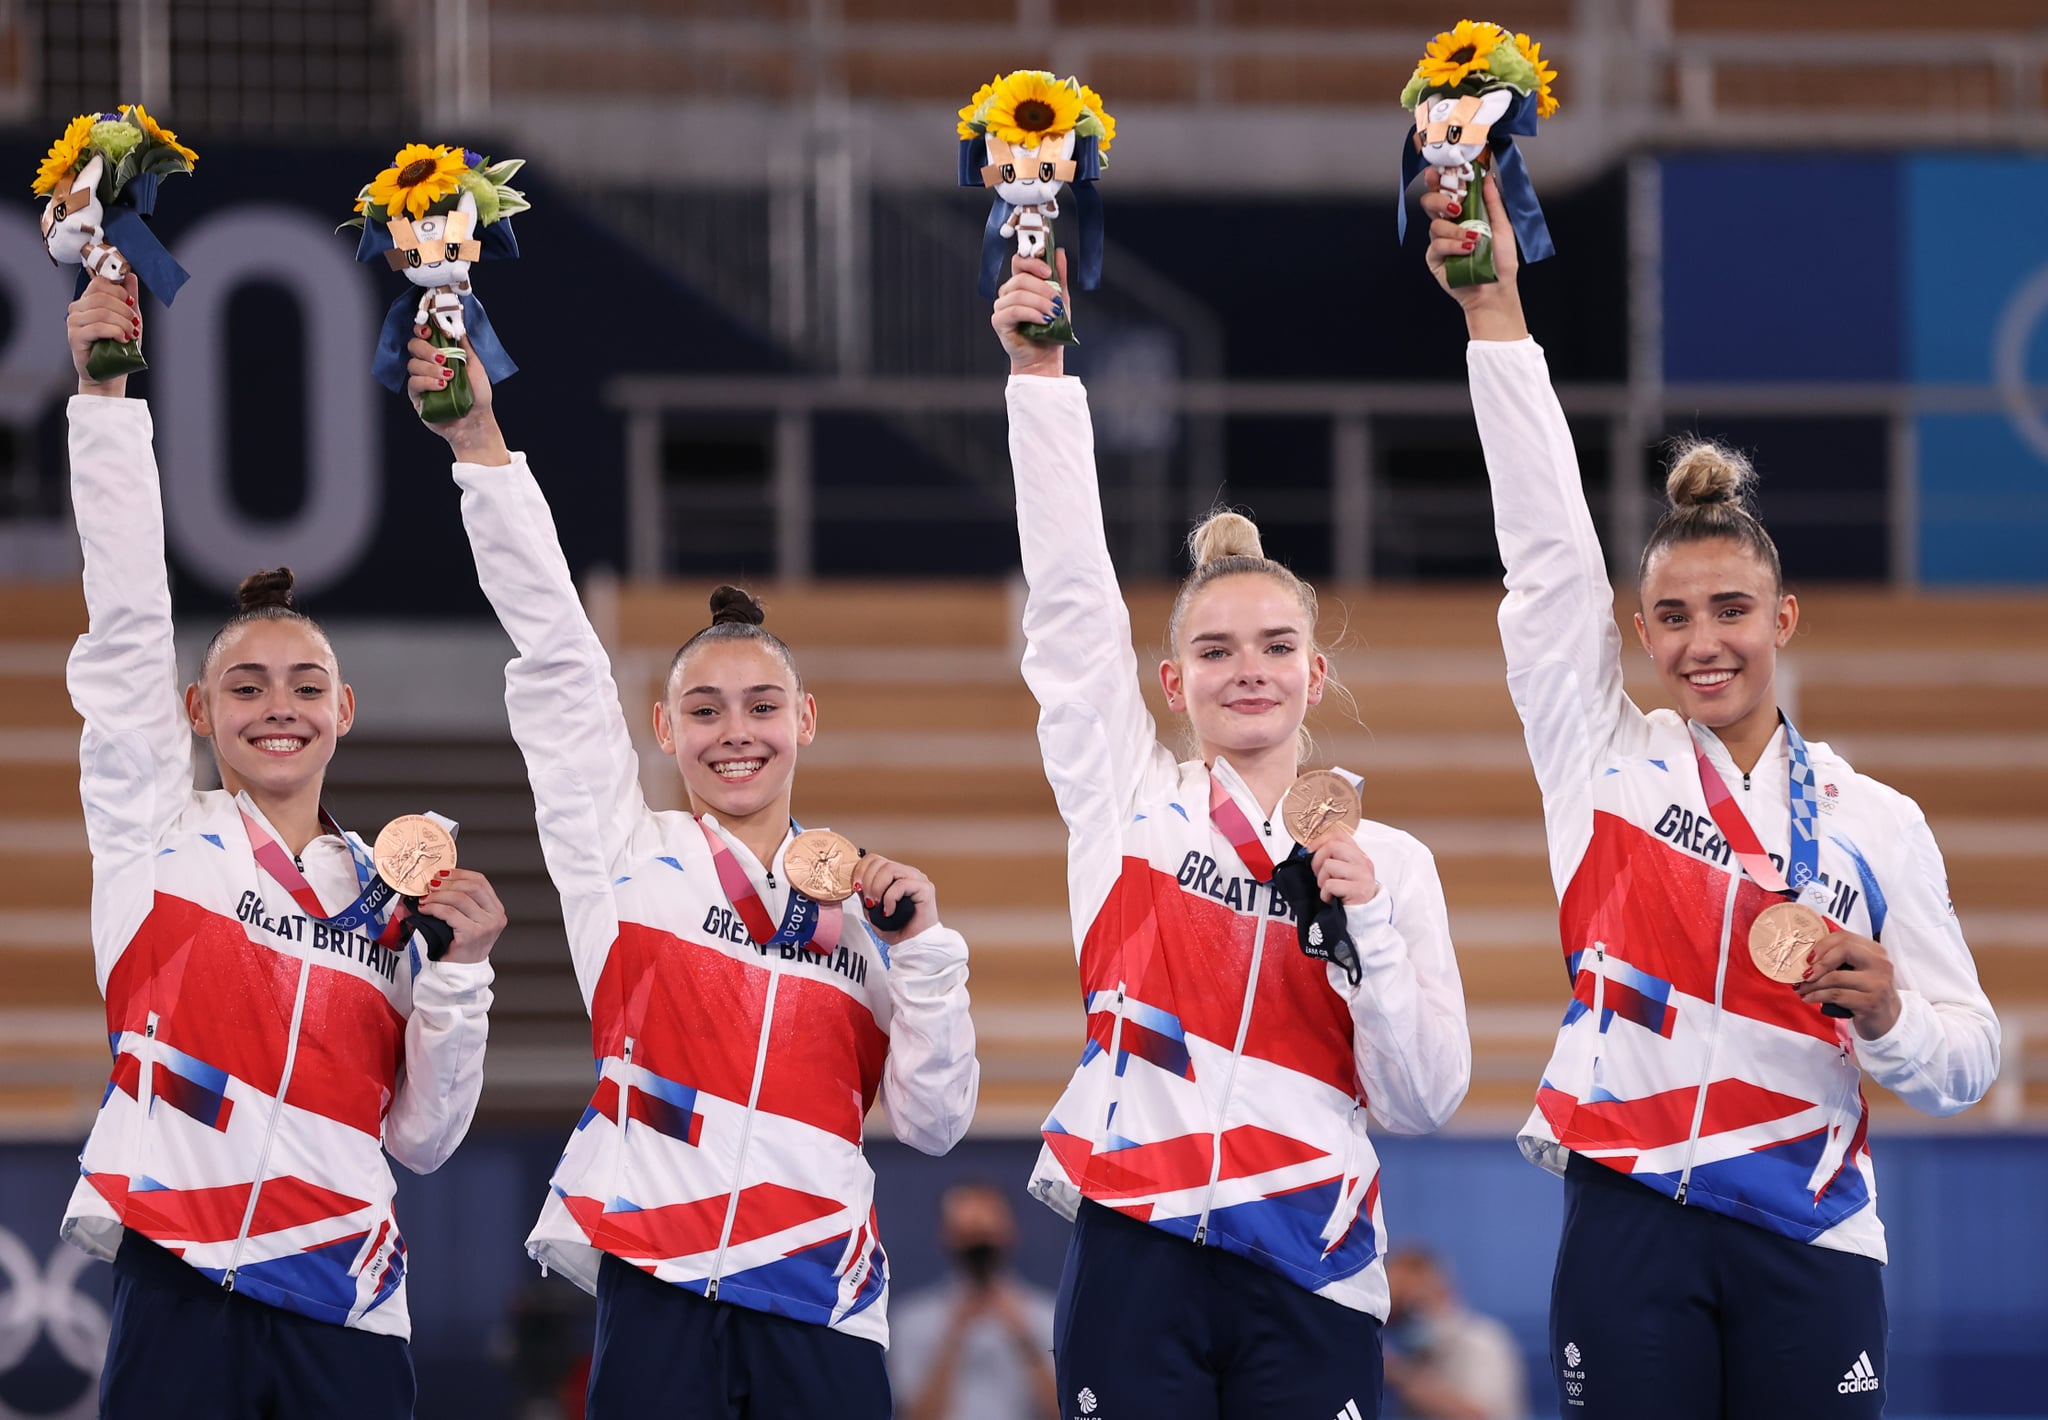 TOKYO, JAPAN - JULY 27: Team Great Britain celebrates after winning the bronze medal during the Women's Team Final on day four of the Tokyo 2020 Olympic Games at Ariake Gymnastics Centre on July 27, 2021 in Tokyo, Japan. (Photo by Laurence Griffiths/Getty Images)